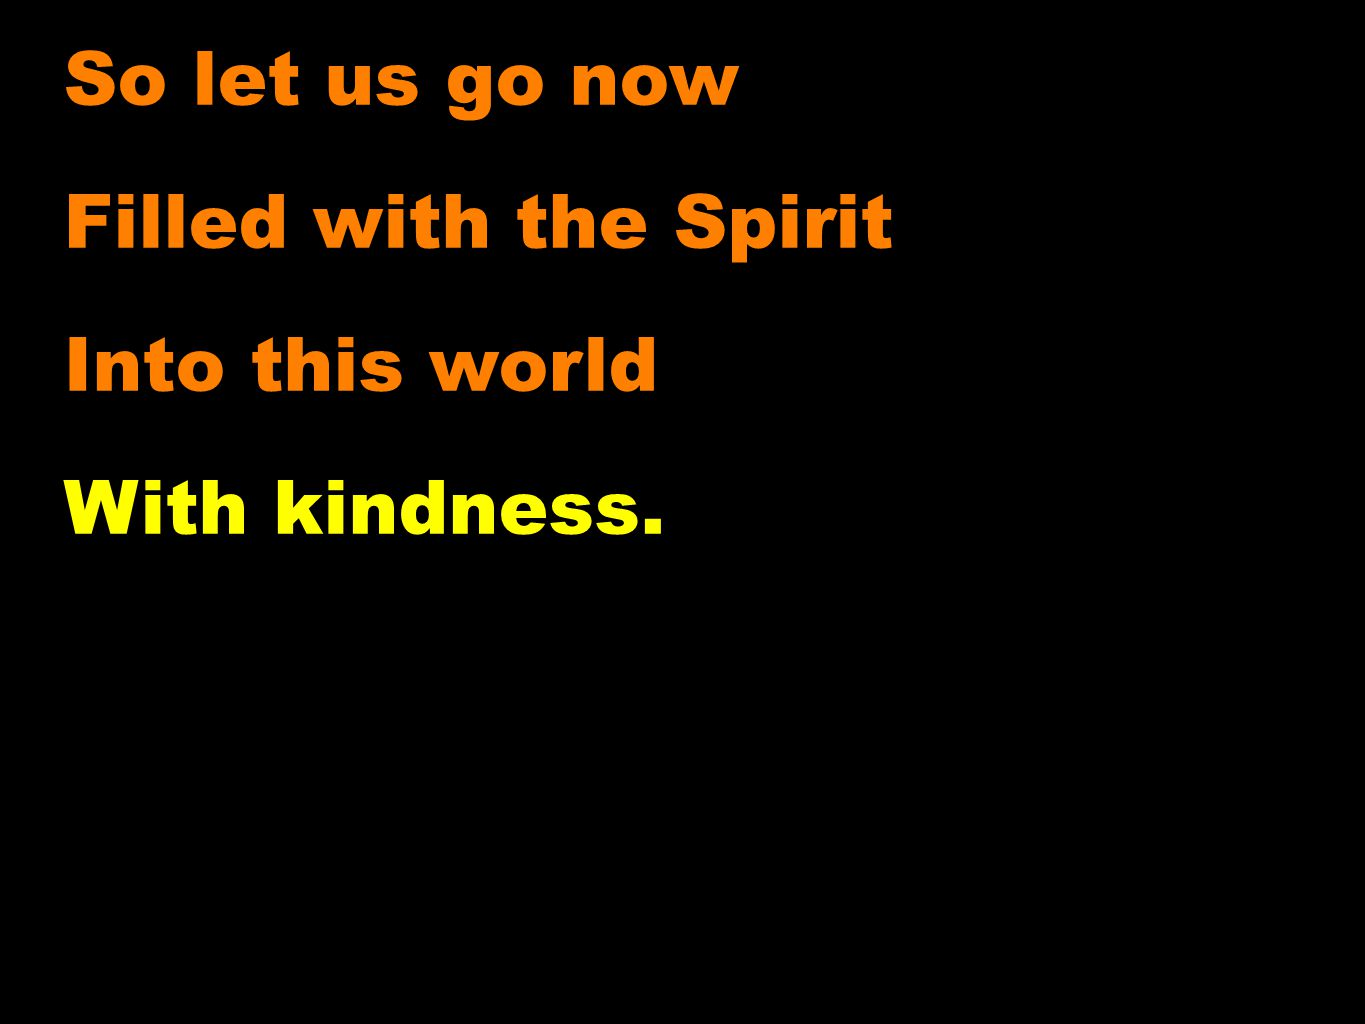 So let us go now Filled with the Spirit Into this world With kindness.